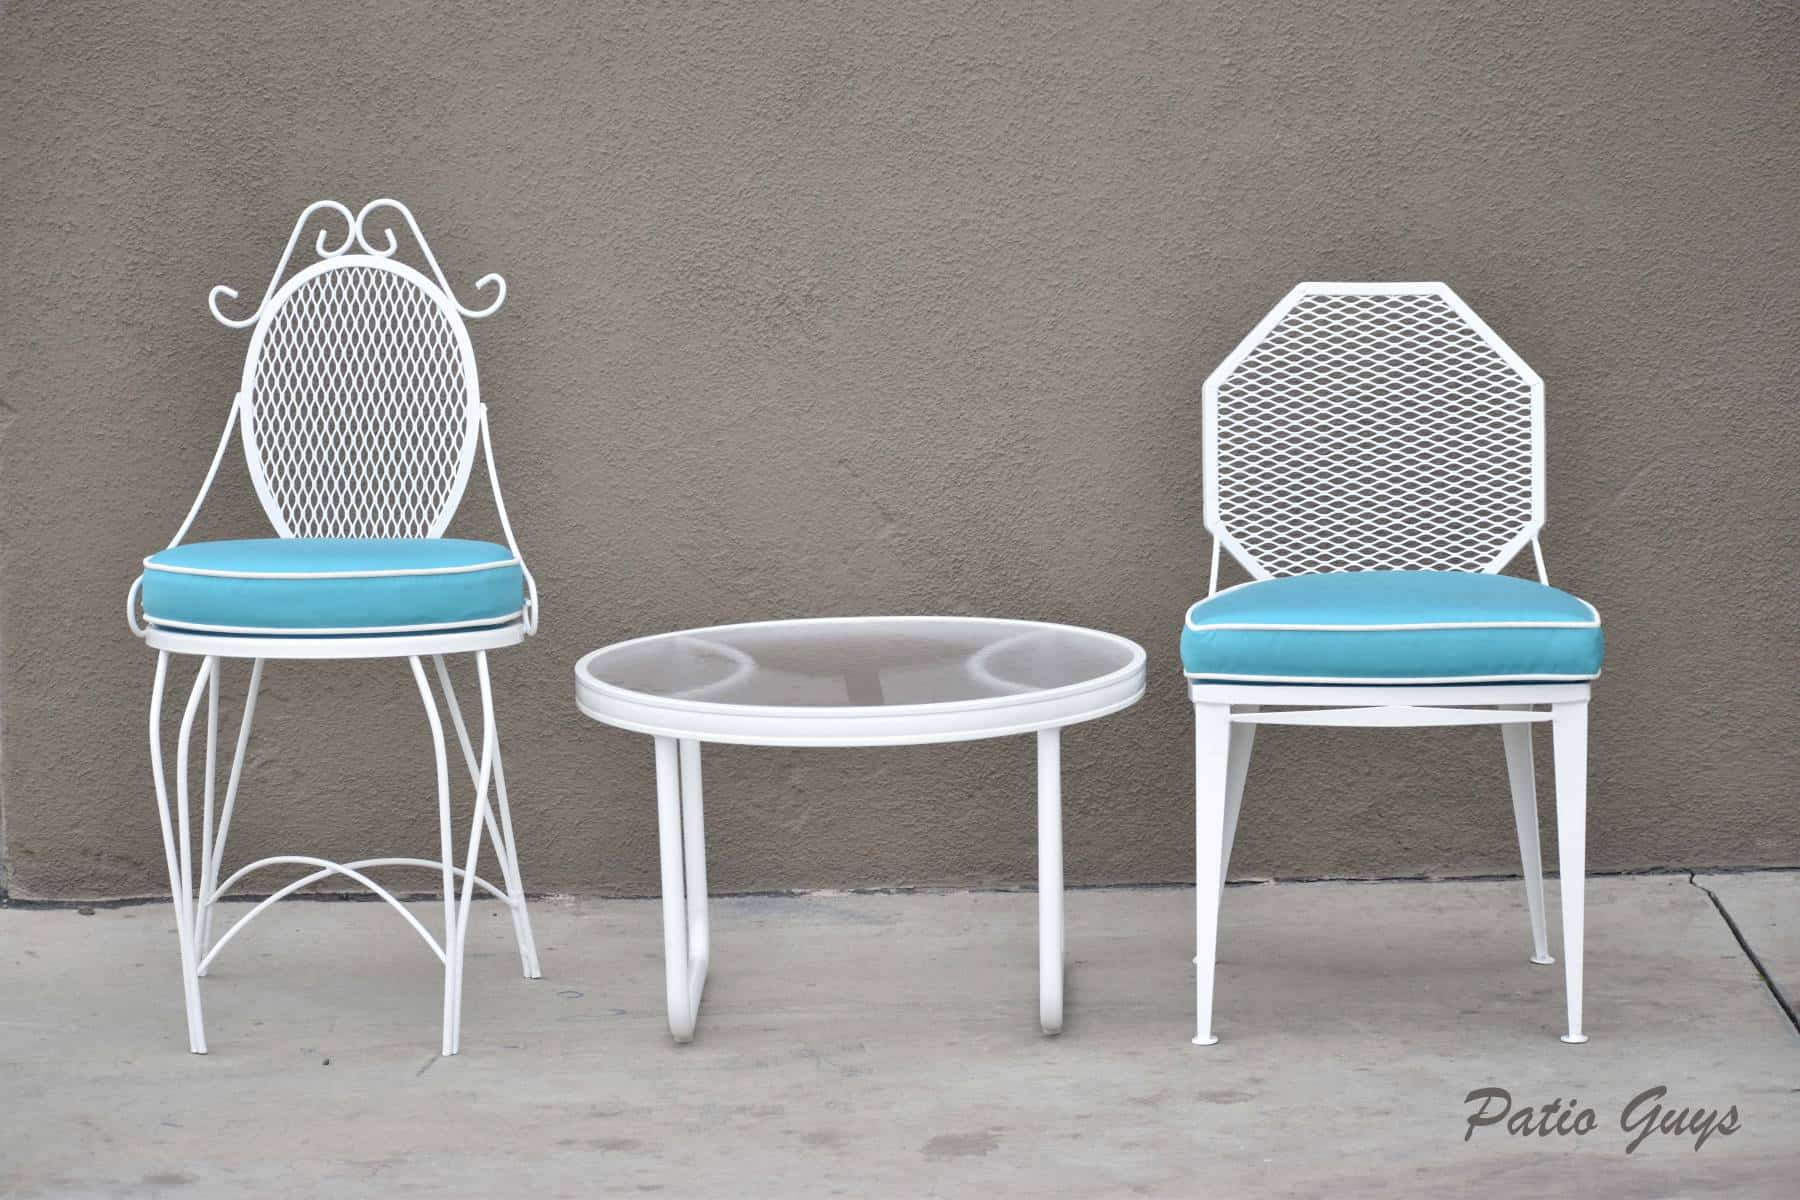 light blue chushion on white garden chairs with a round acrylic side table